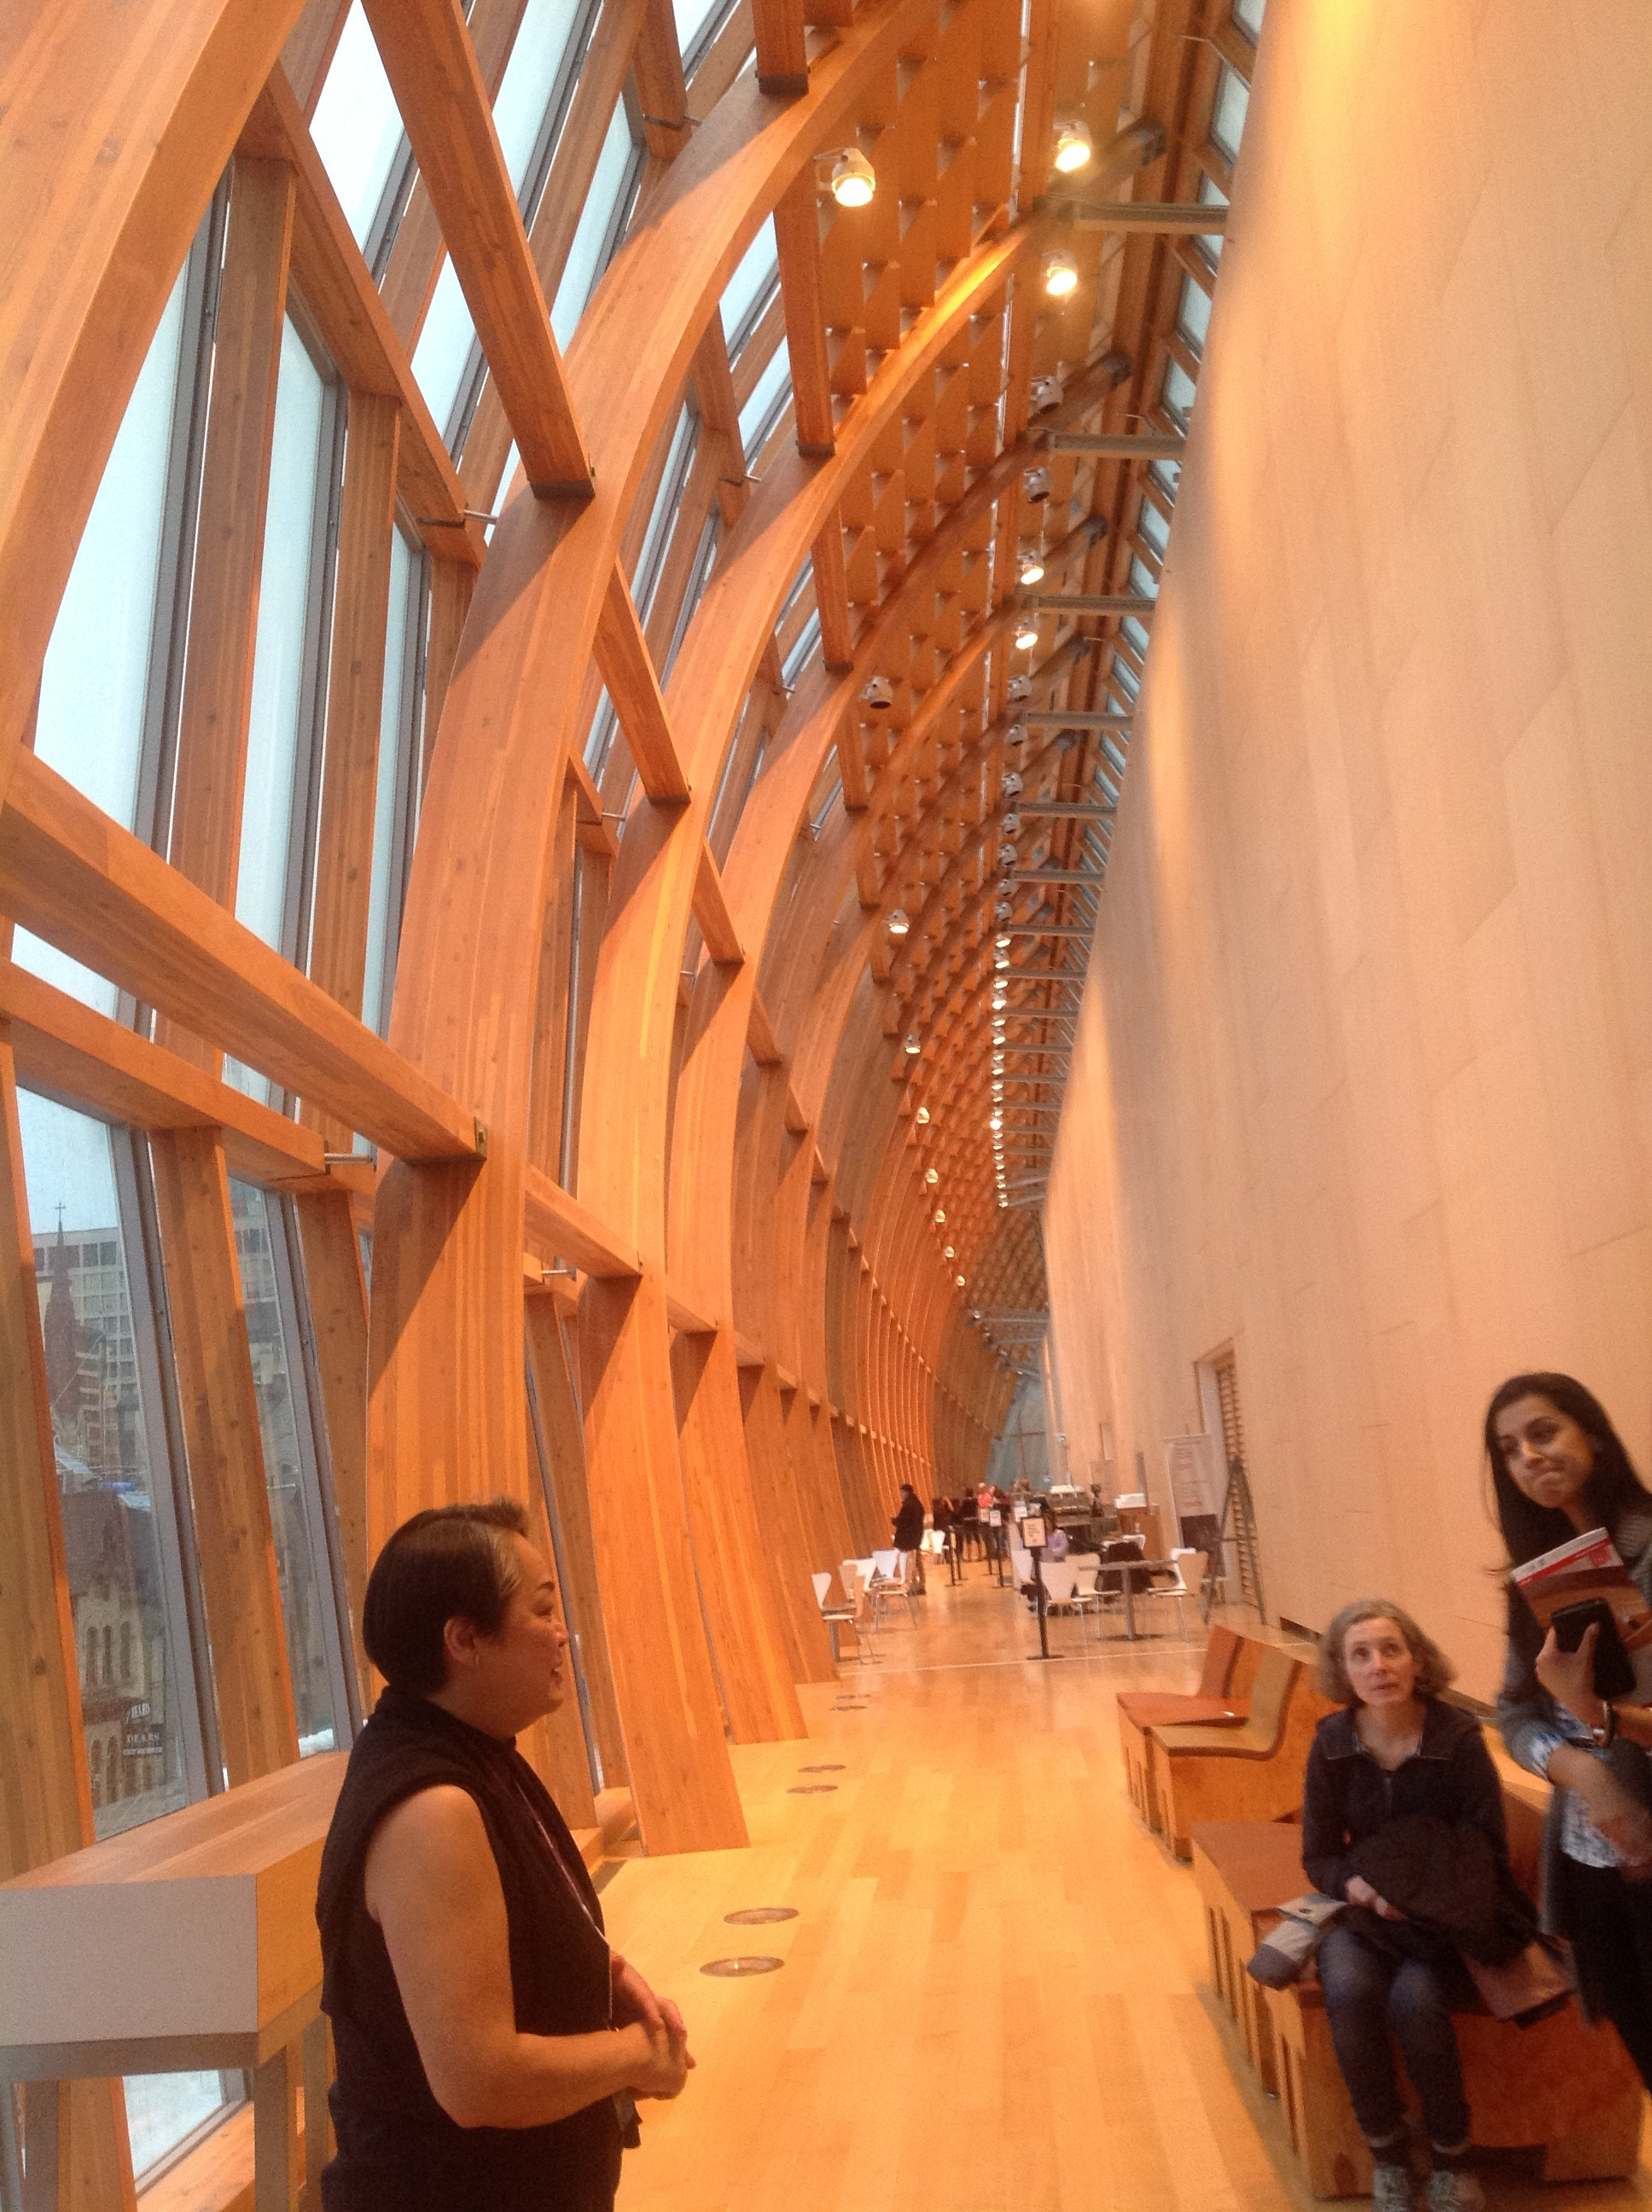 Galleria Italia at the AGO and our tour guide.